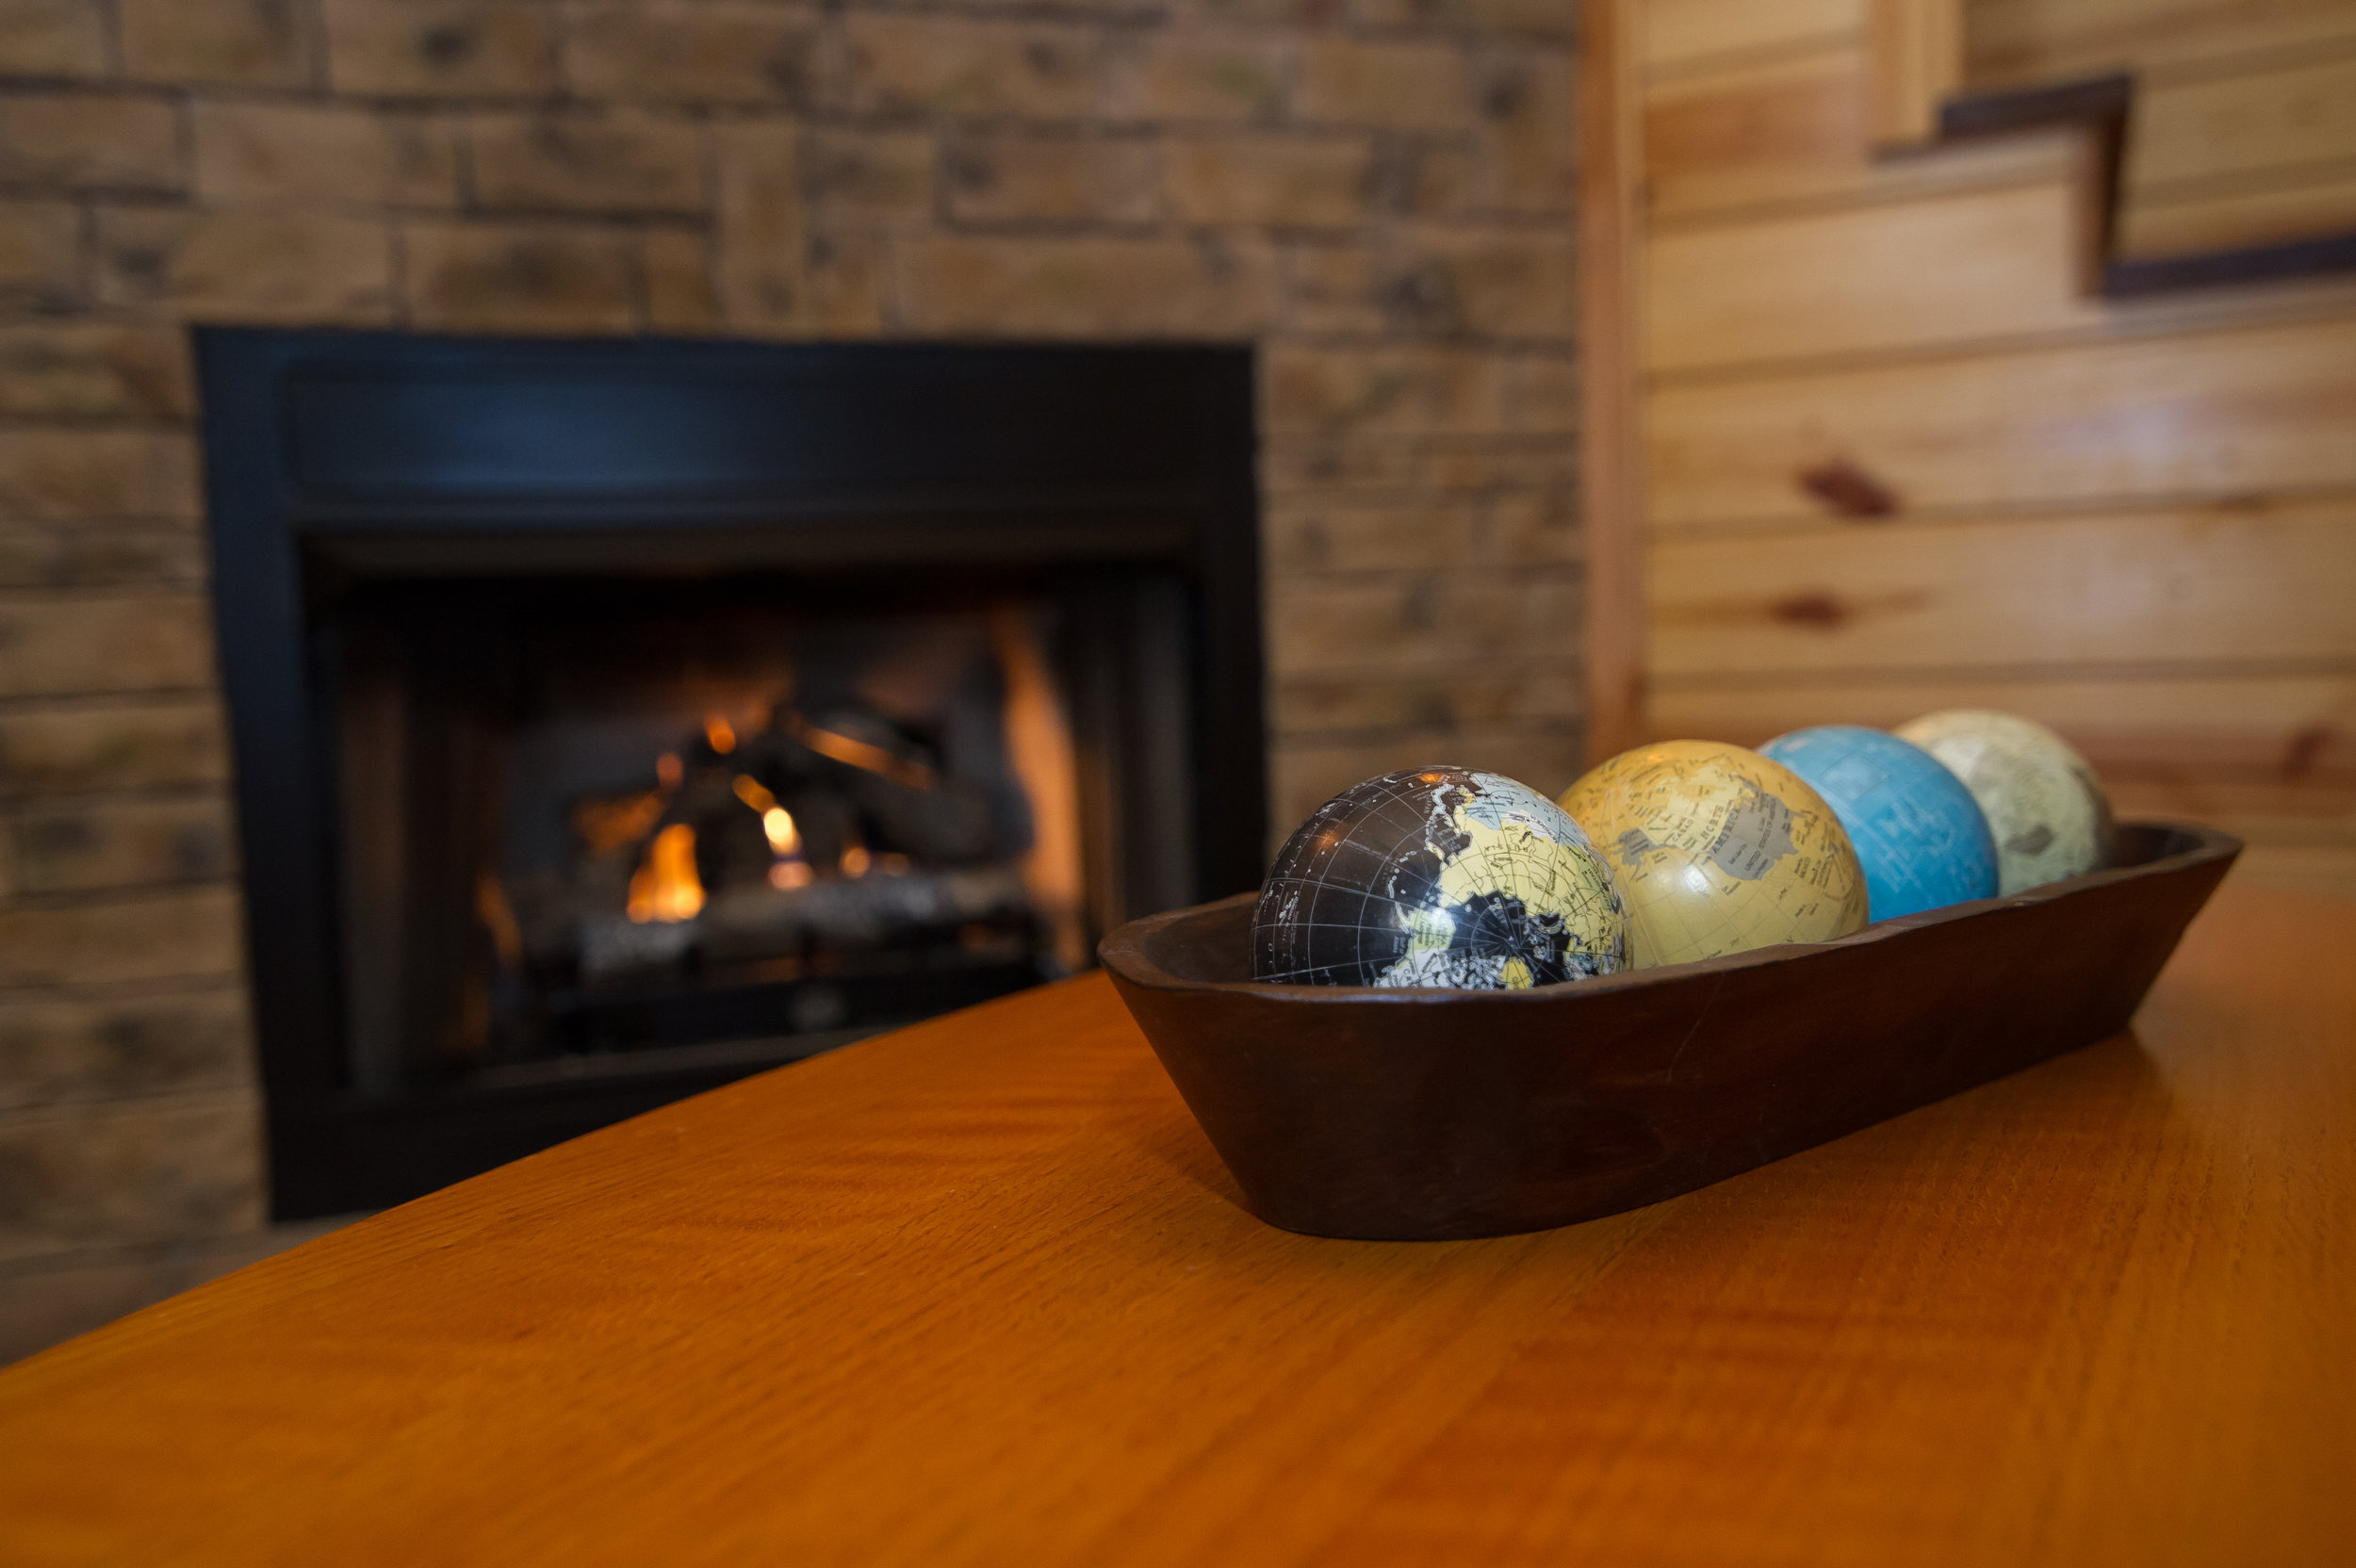 Wood dish of Globes and fireplace in background.jpg.jpg